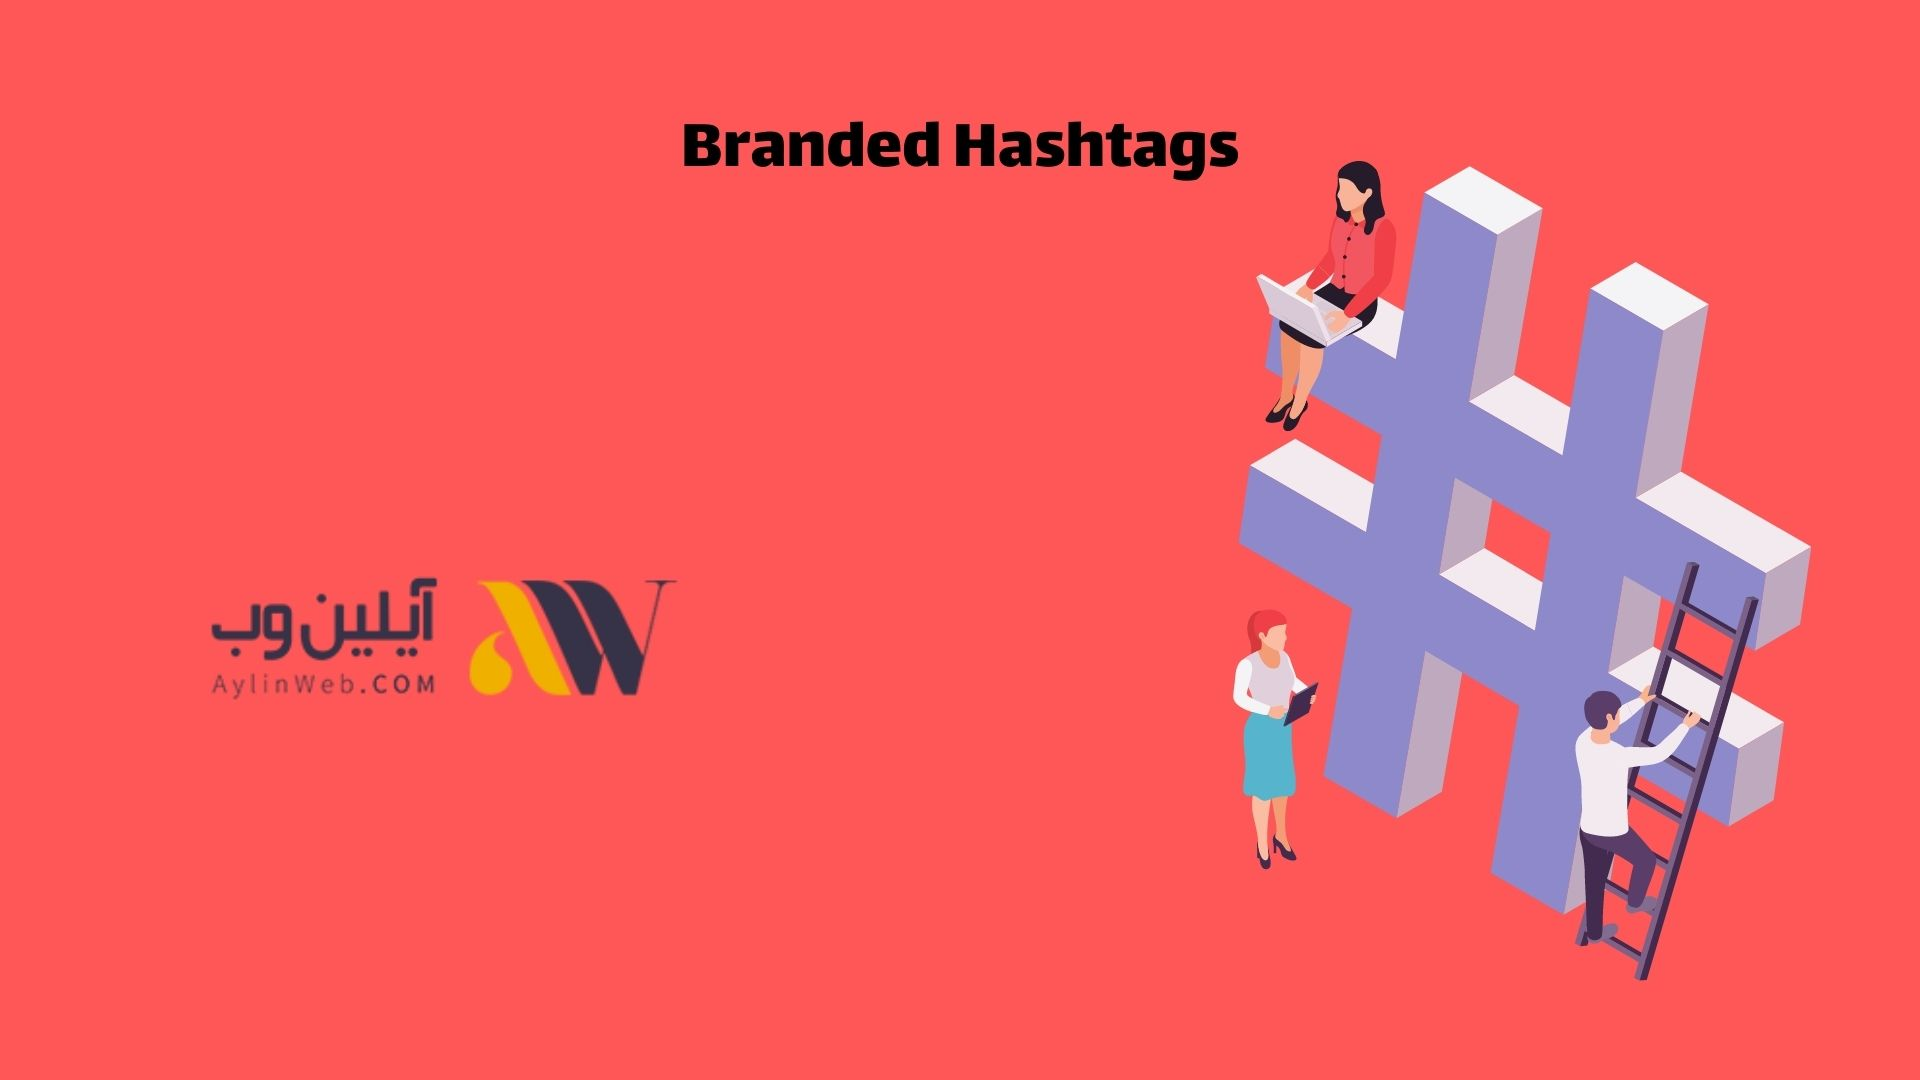 Branded Hashtags